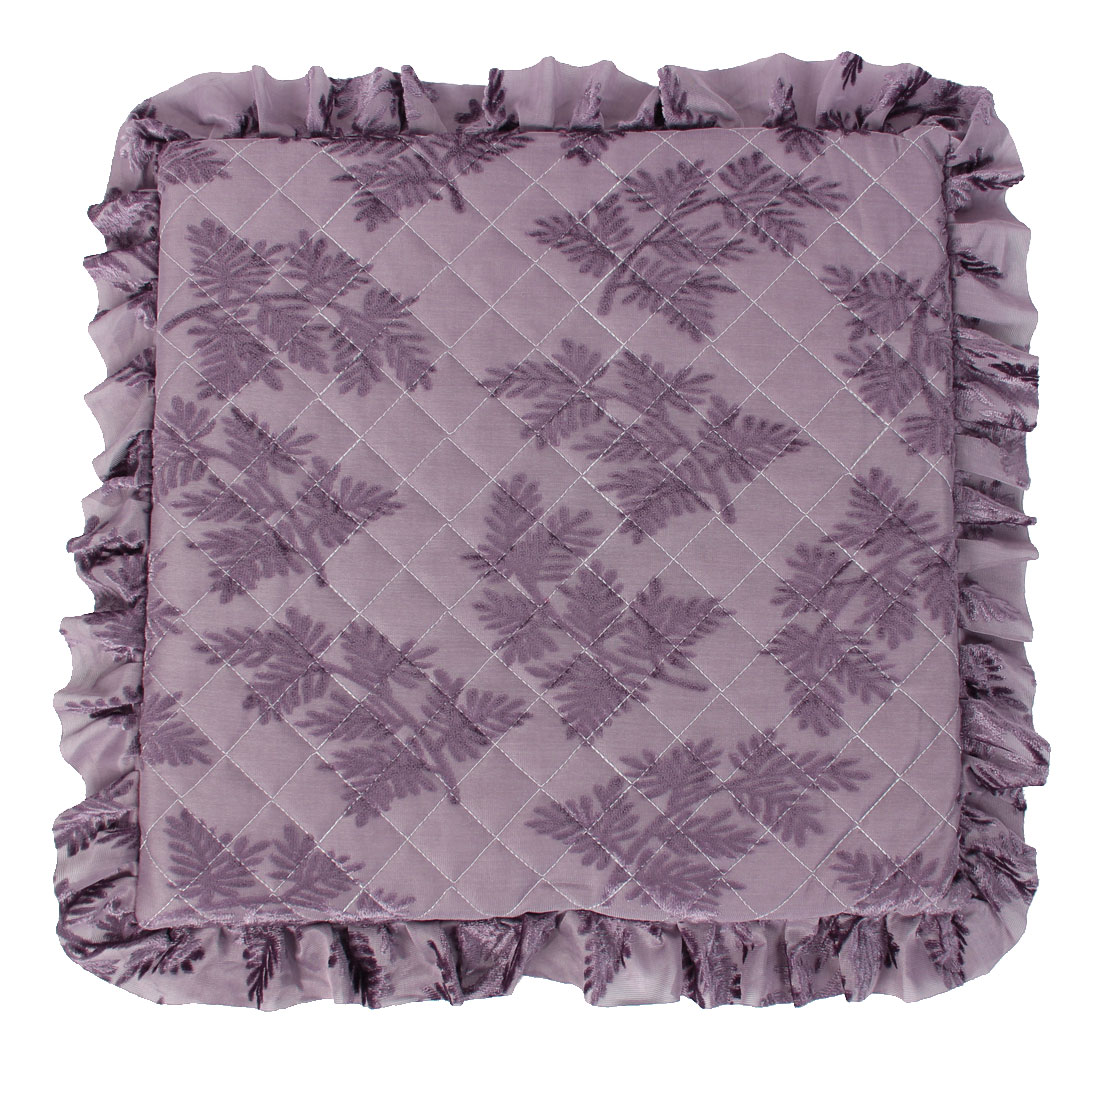 "Home Kitchen Ruffled Chair Seat Cushion Pad 16"" x 16"" Purple"